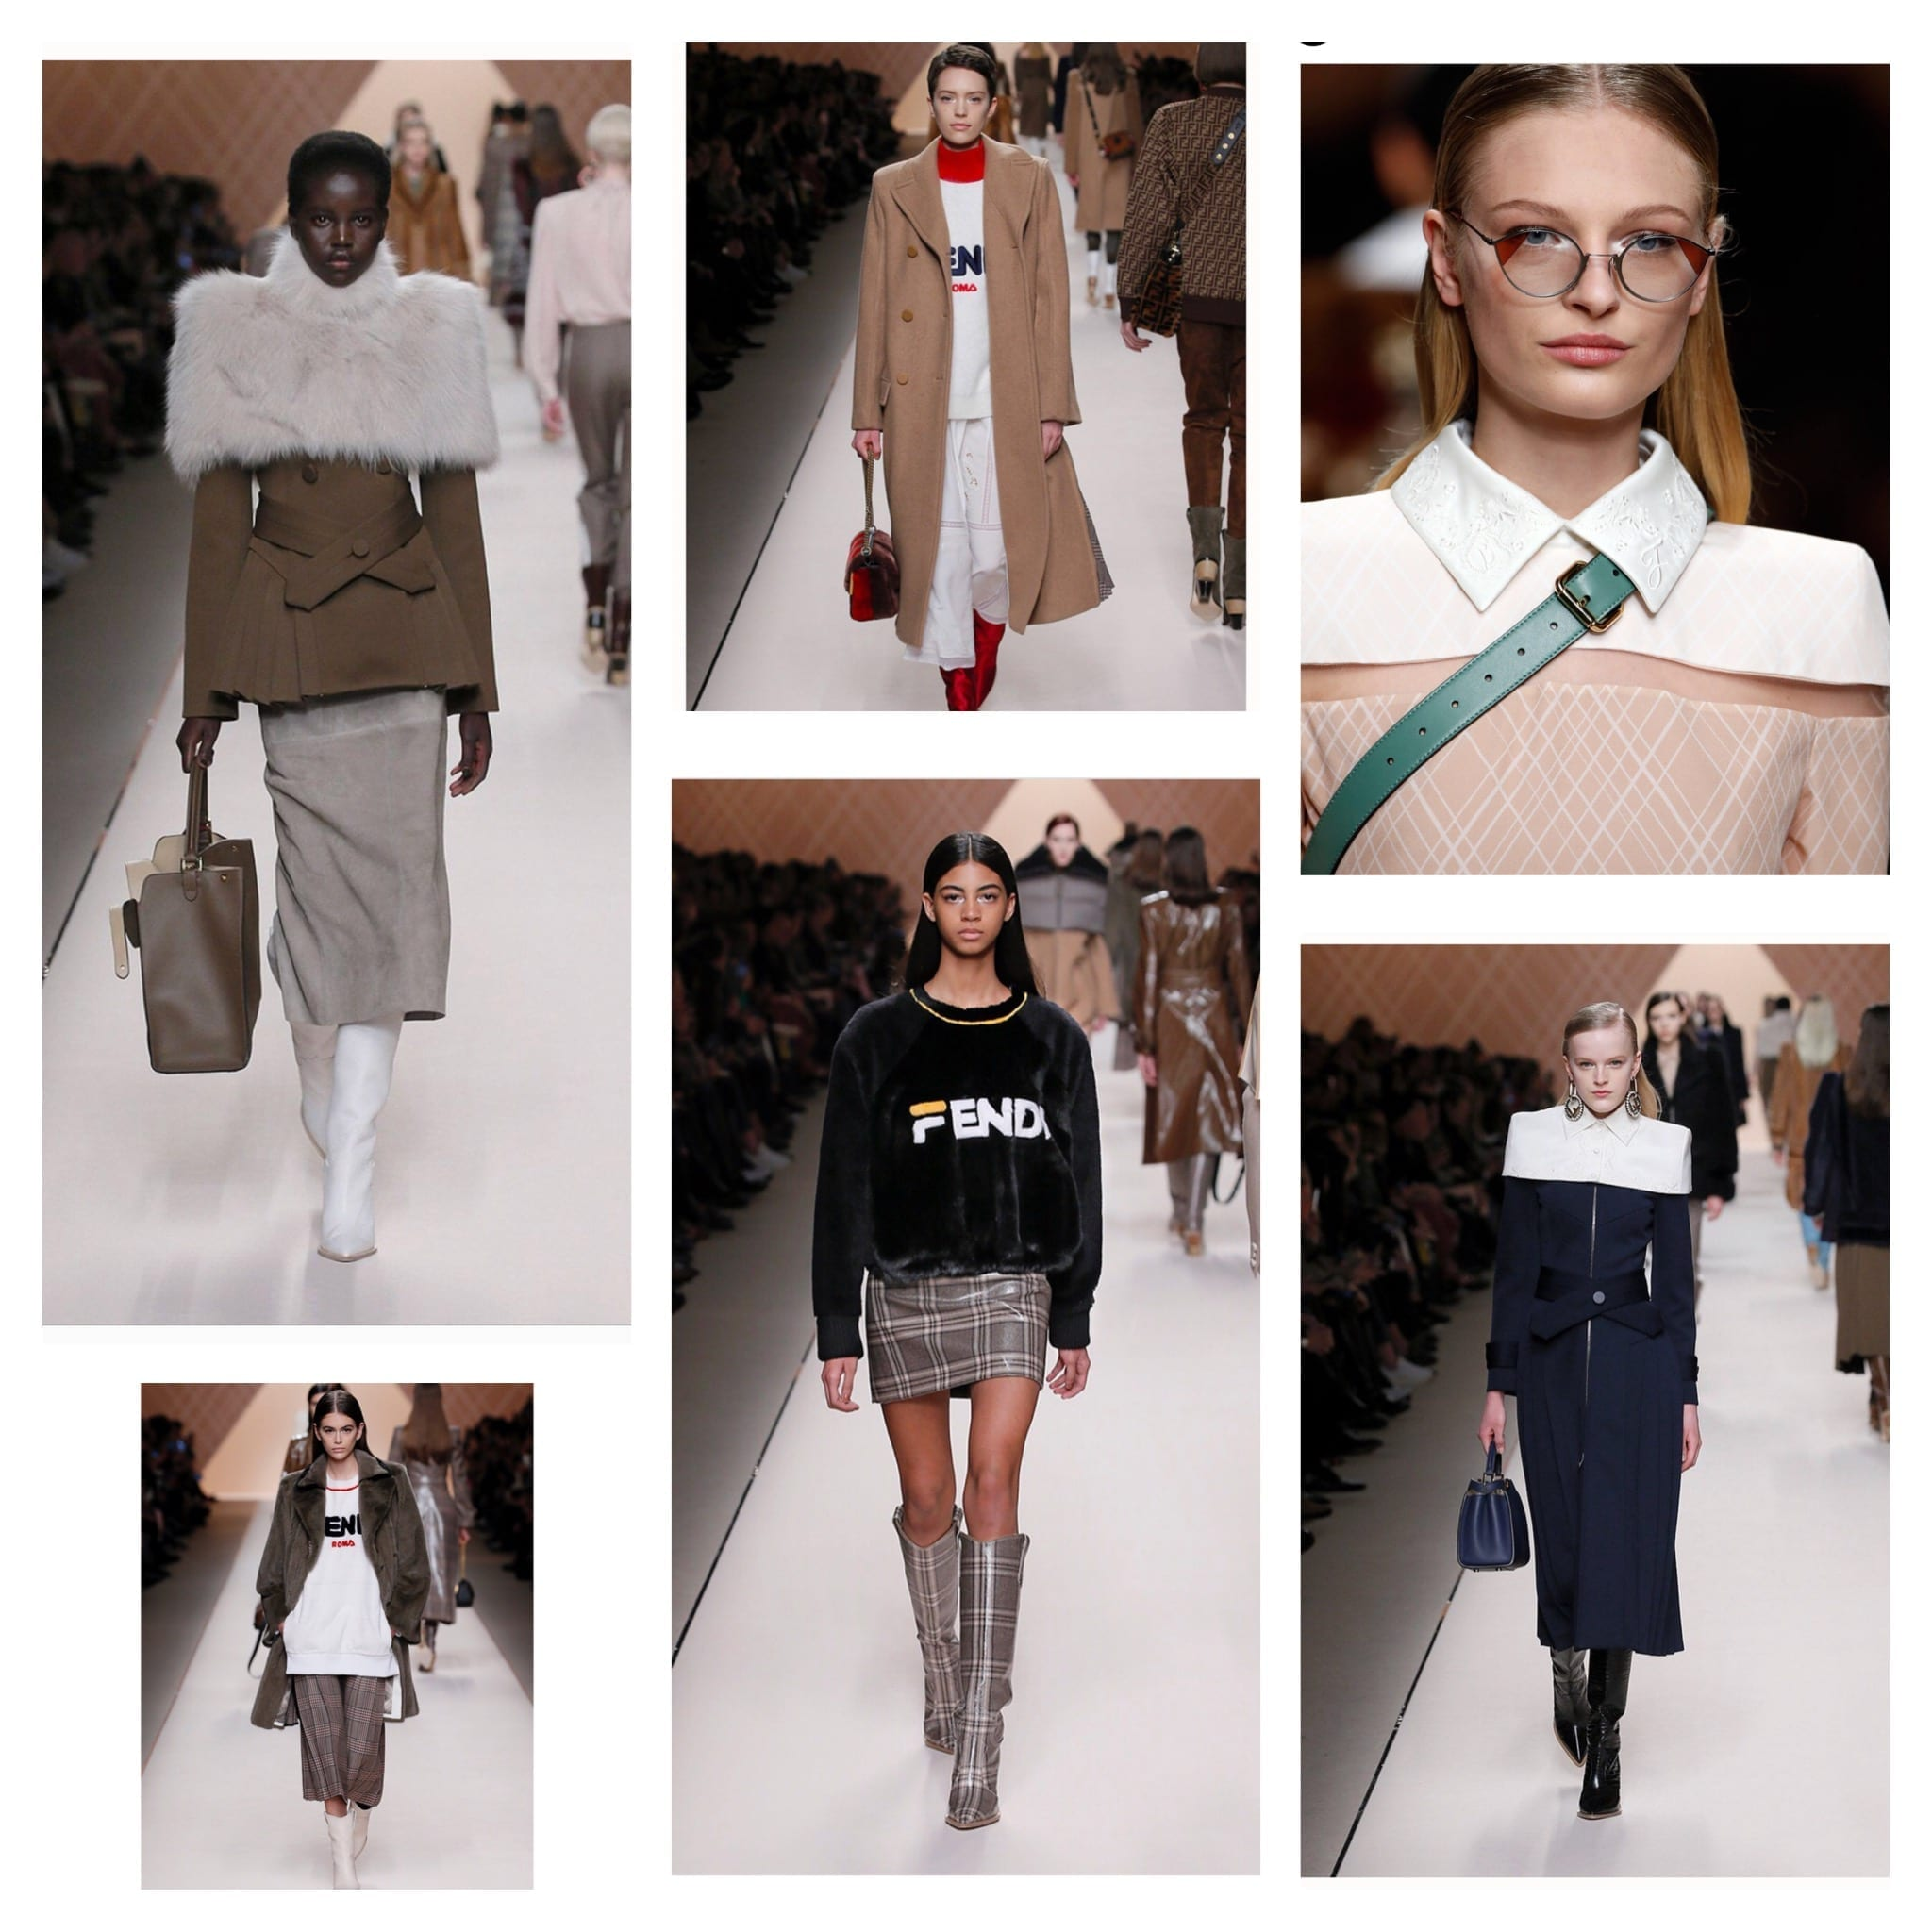 Fendi A/I 2018-19, Versace A/I 2018-19, Milano fashion week 2018, theladycracy.it, elisa bellino, fashion blog italia 2018, blogger moda 2018, blogger moda più seguite 2018, tendenze moda autunno inverno 2018-19,